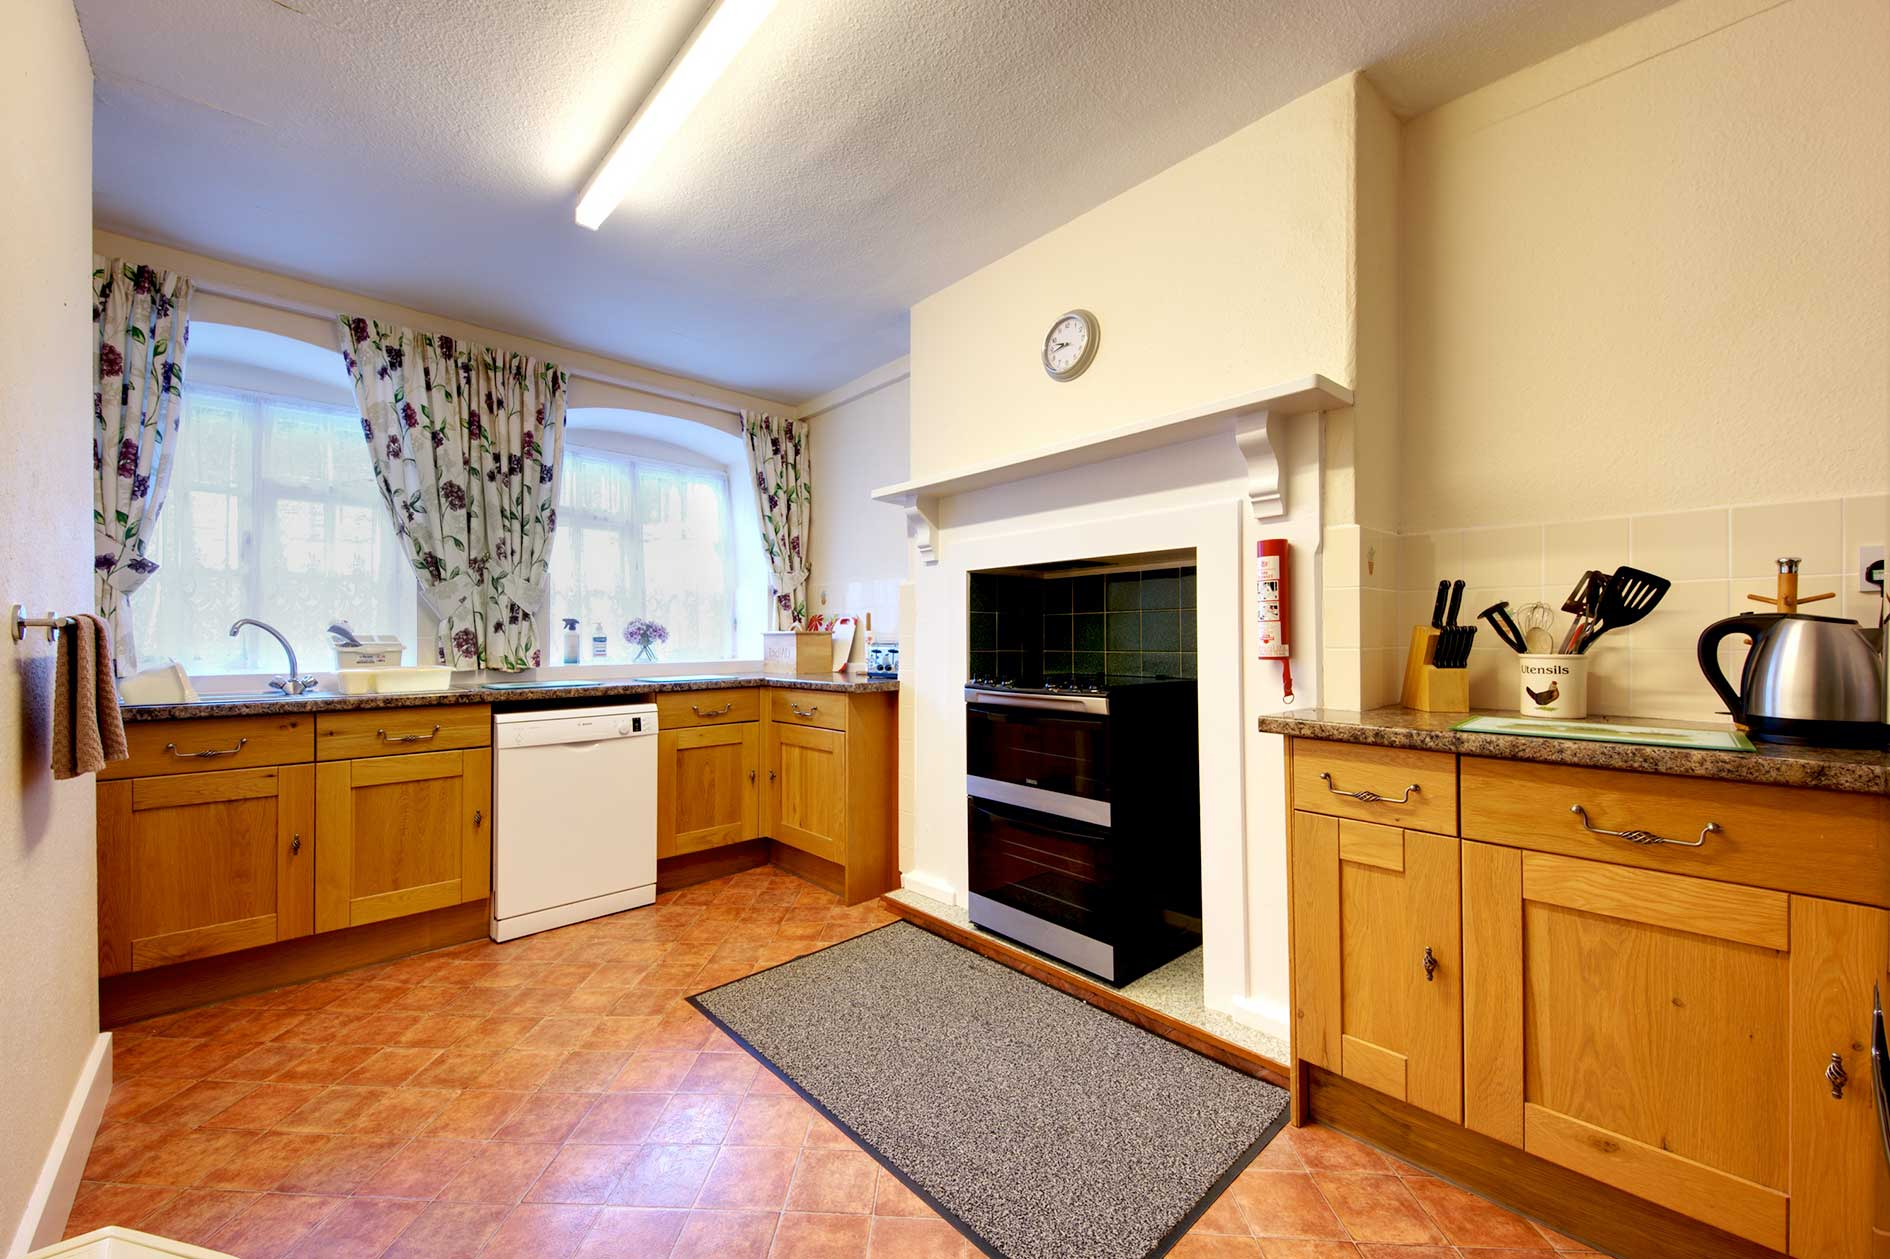 Light Kitchen With Wooden Cupboards, Black Cooker And Granite Effect Worktop